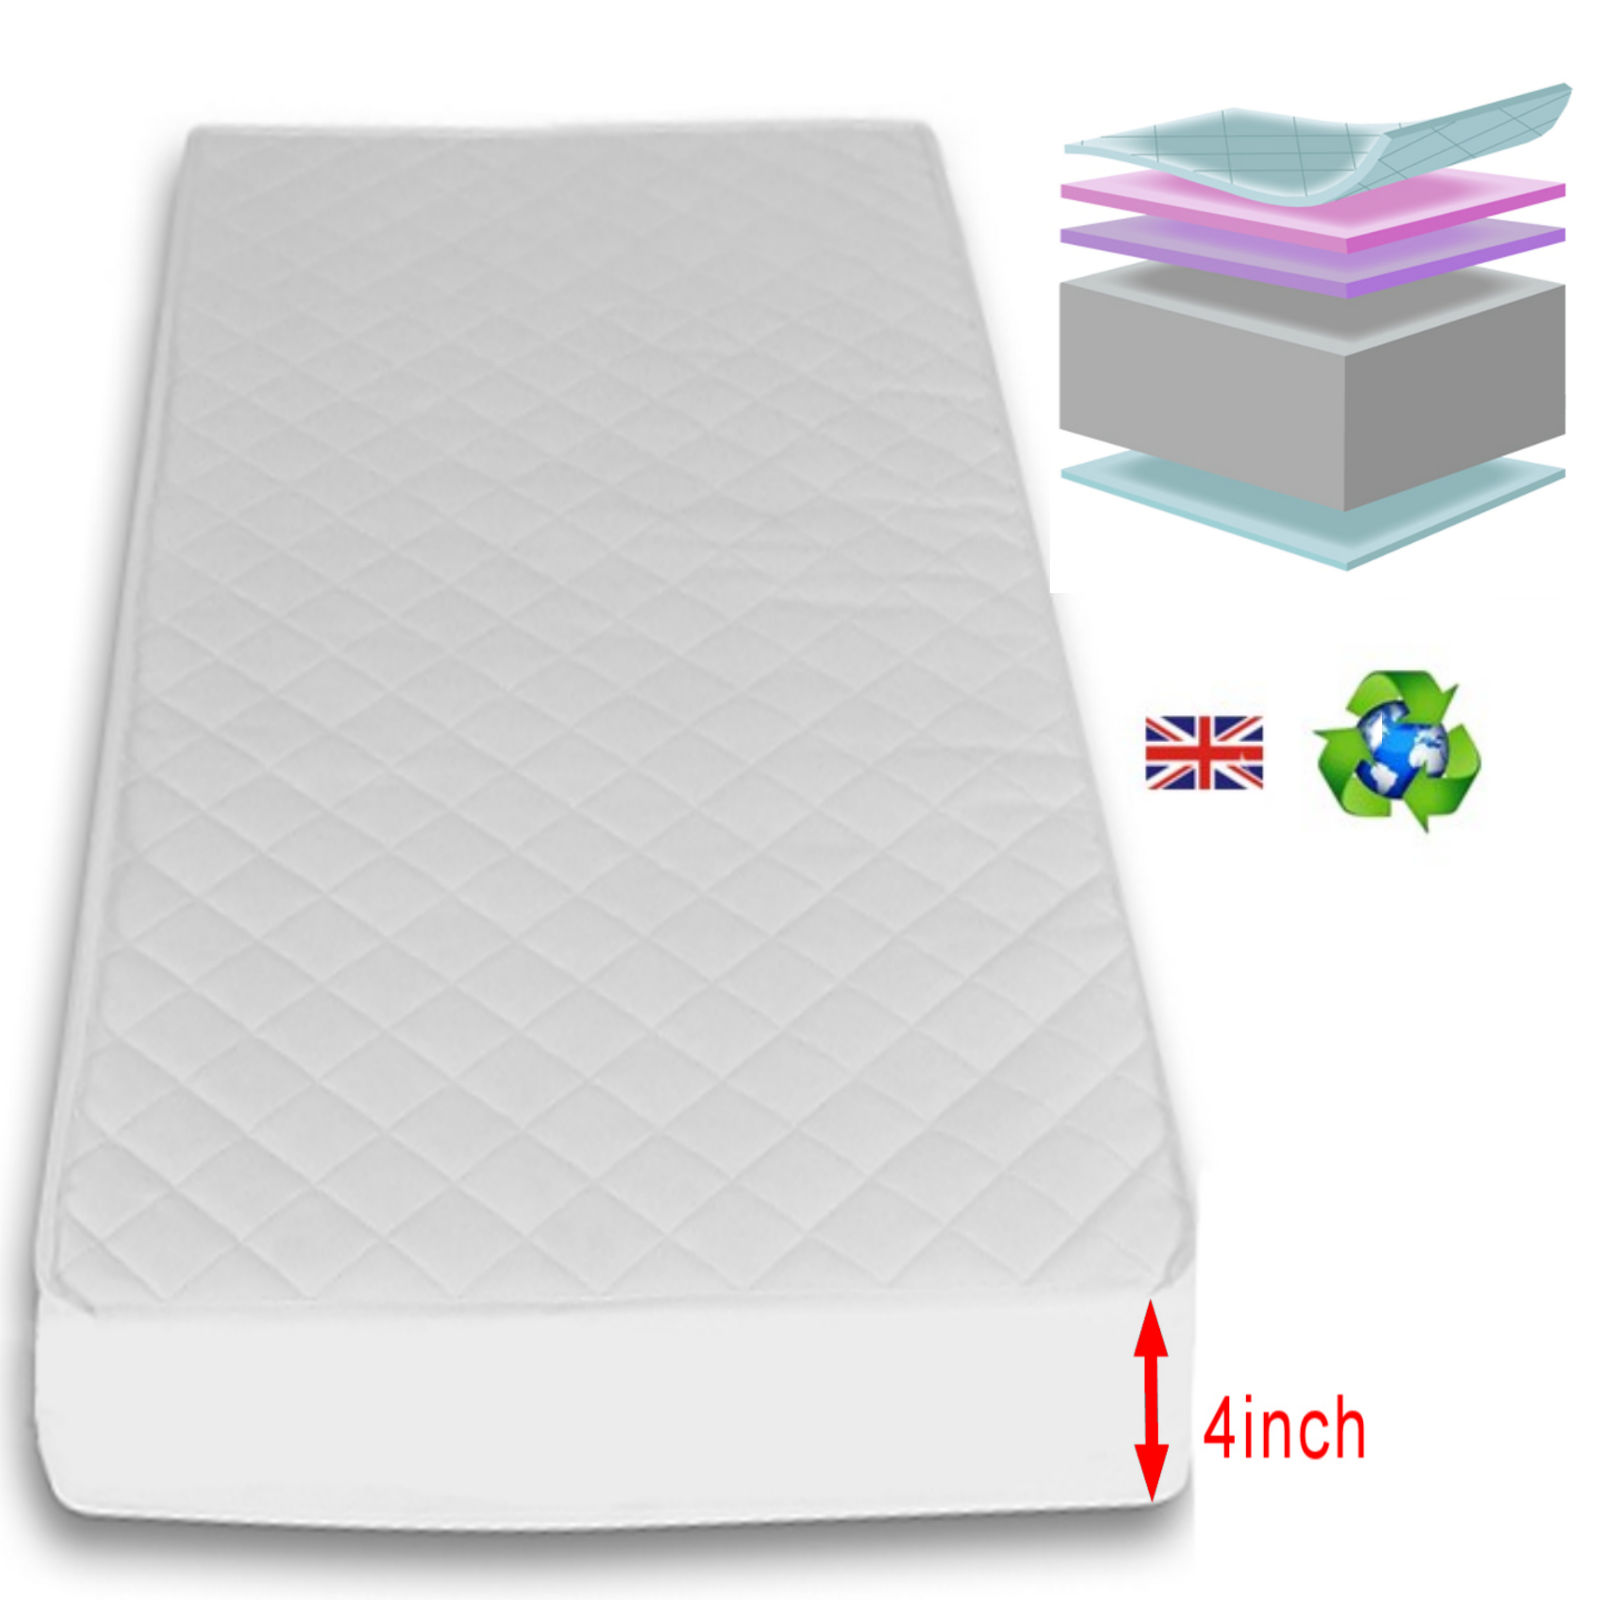 Mattress Cot 4baby 4 Inch Deluxe Foam Cot Bed Safety Mattress 140 X 70cm